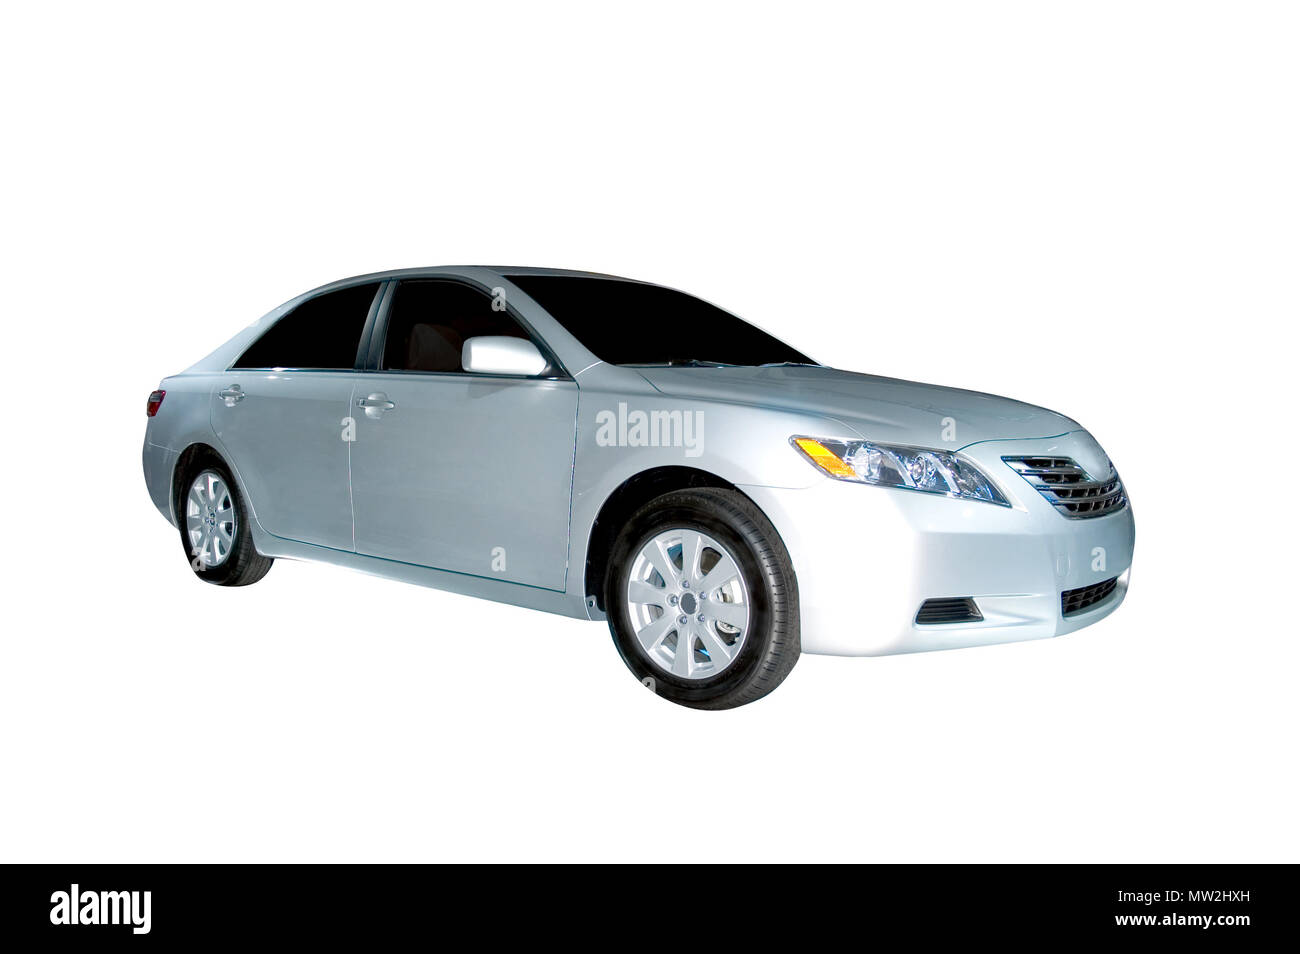 brand new toyota camry hybrid all thailand stock photos and